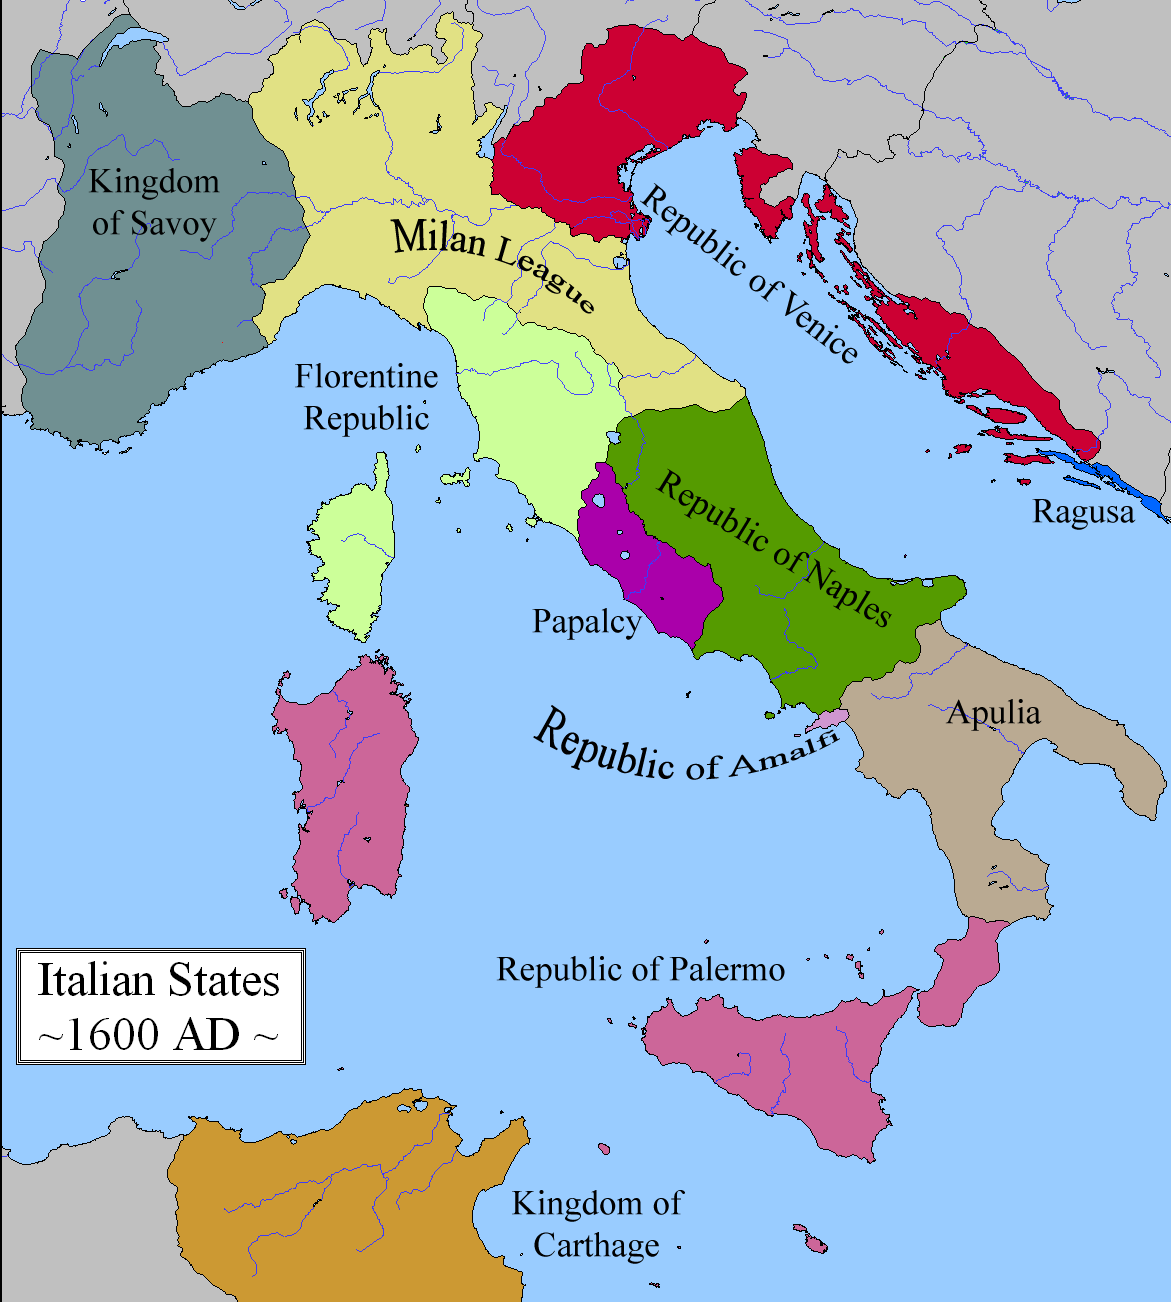 Map Of South Italy.A Map Where Mercantile Republics Hang On In South Italy As Well As